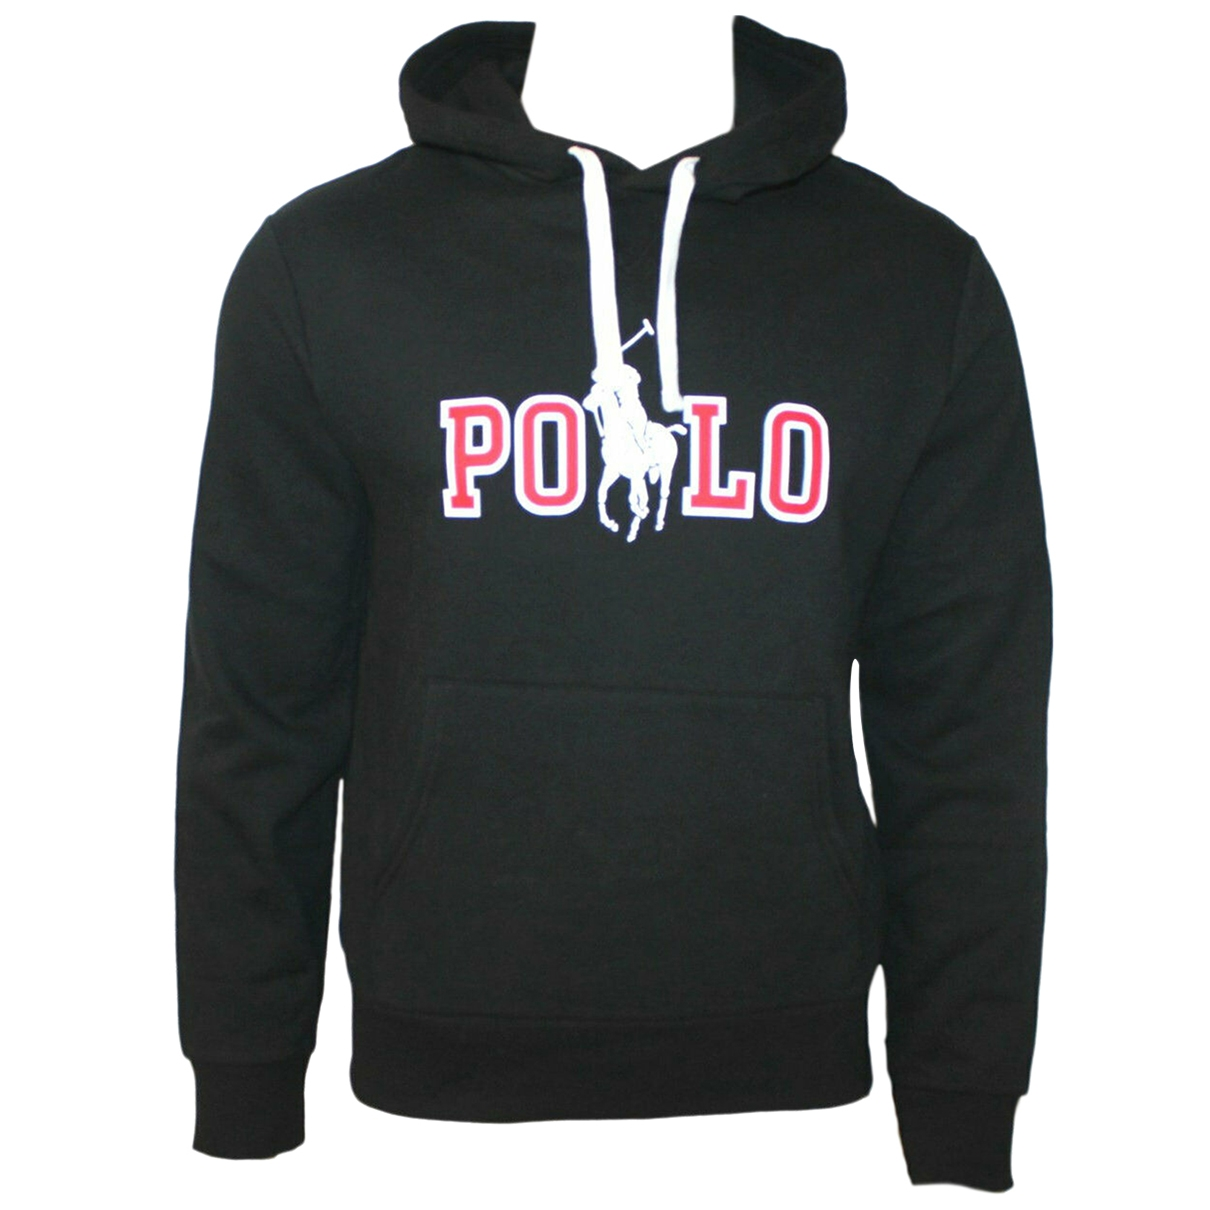 Polo Ralph Lauren \N Black Cotton Knitwear & Sweatshirts for Men L International